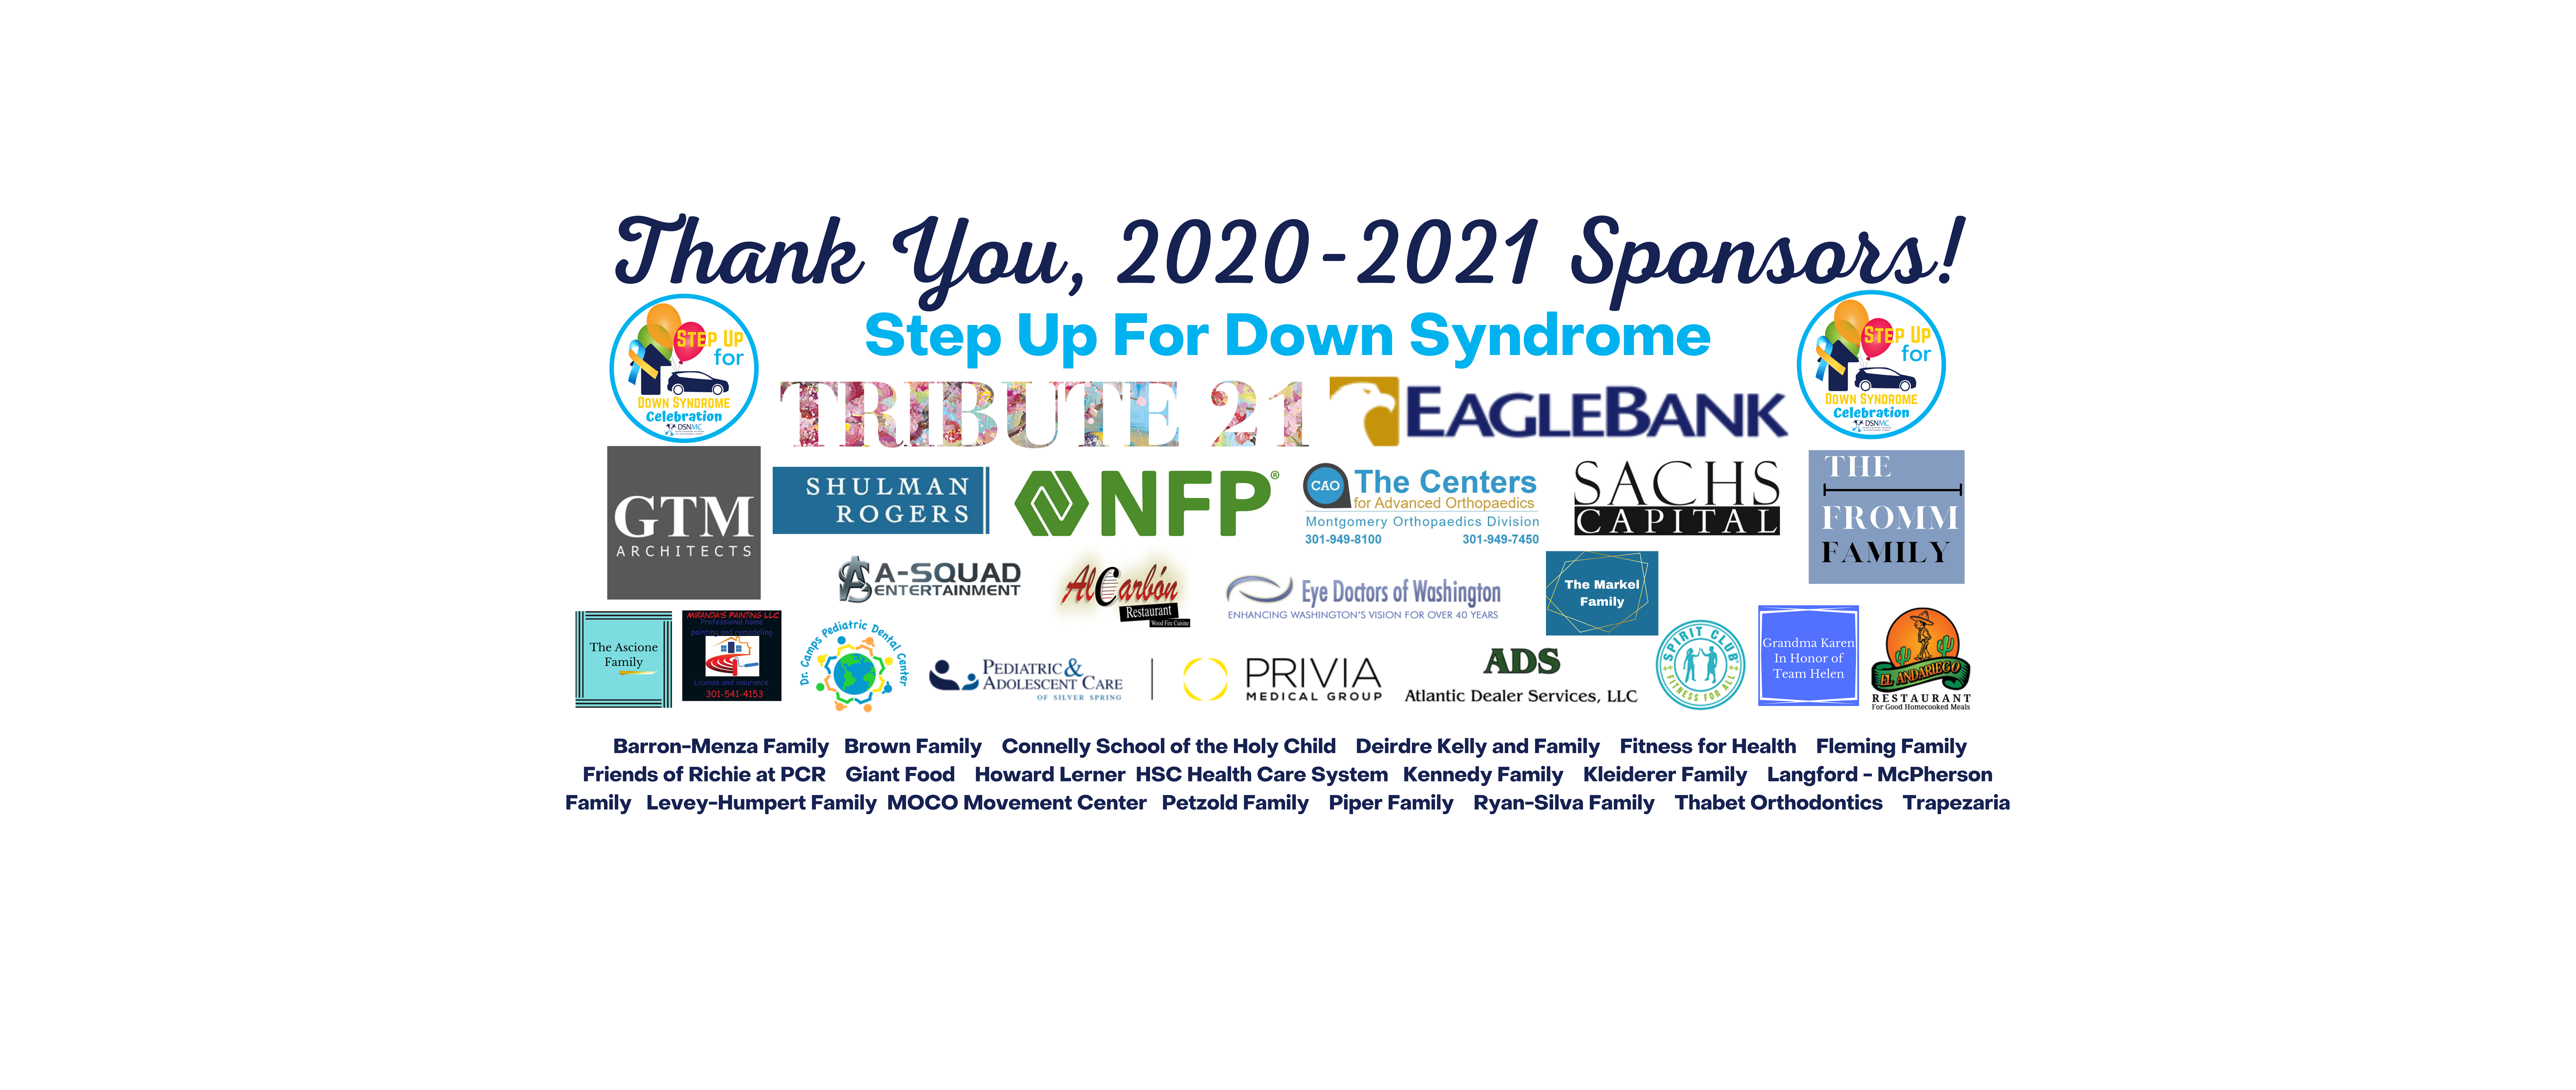 Thank You Sponsors 2020-2021